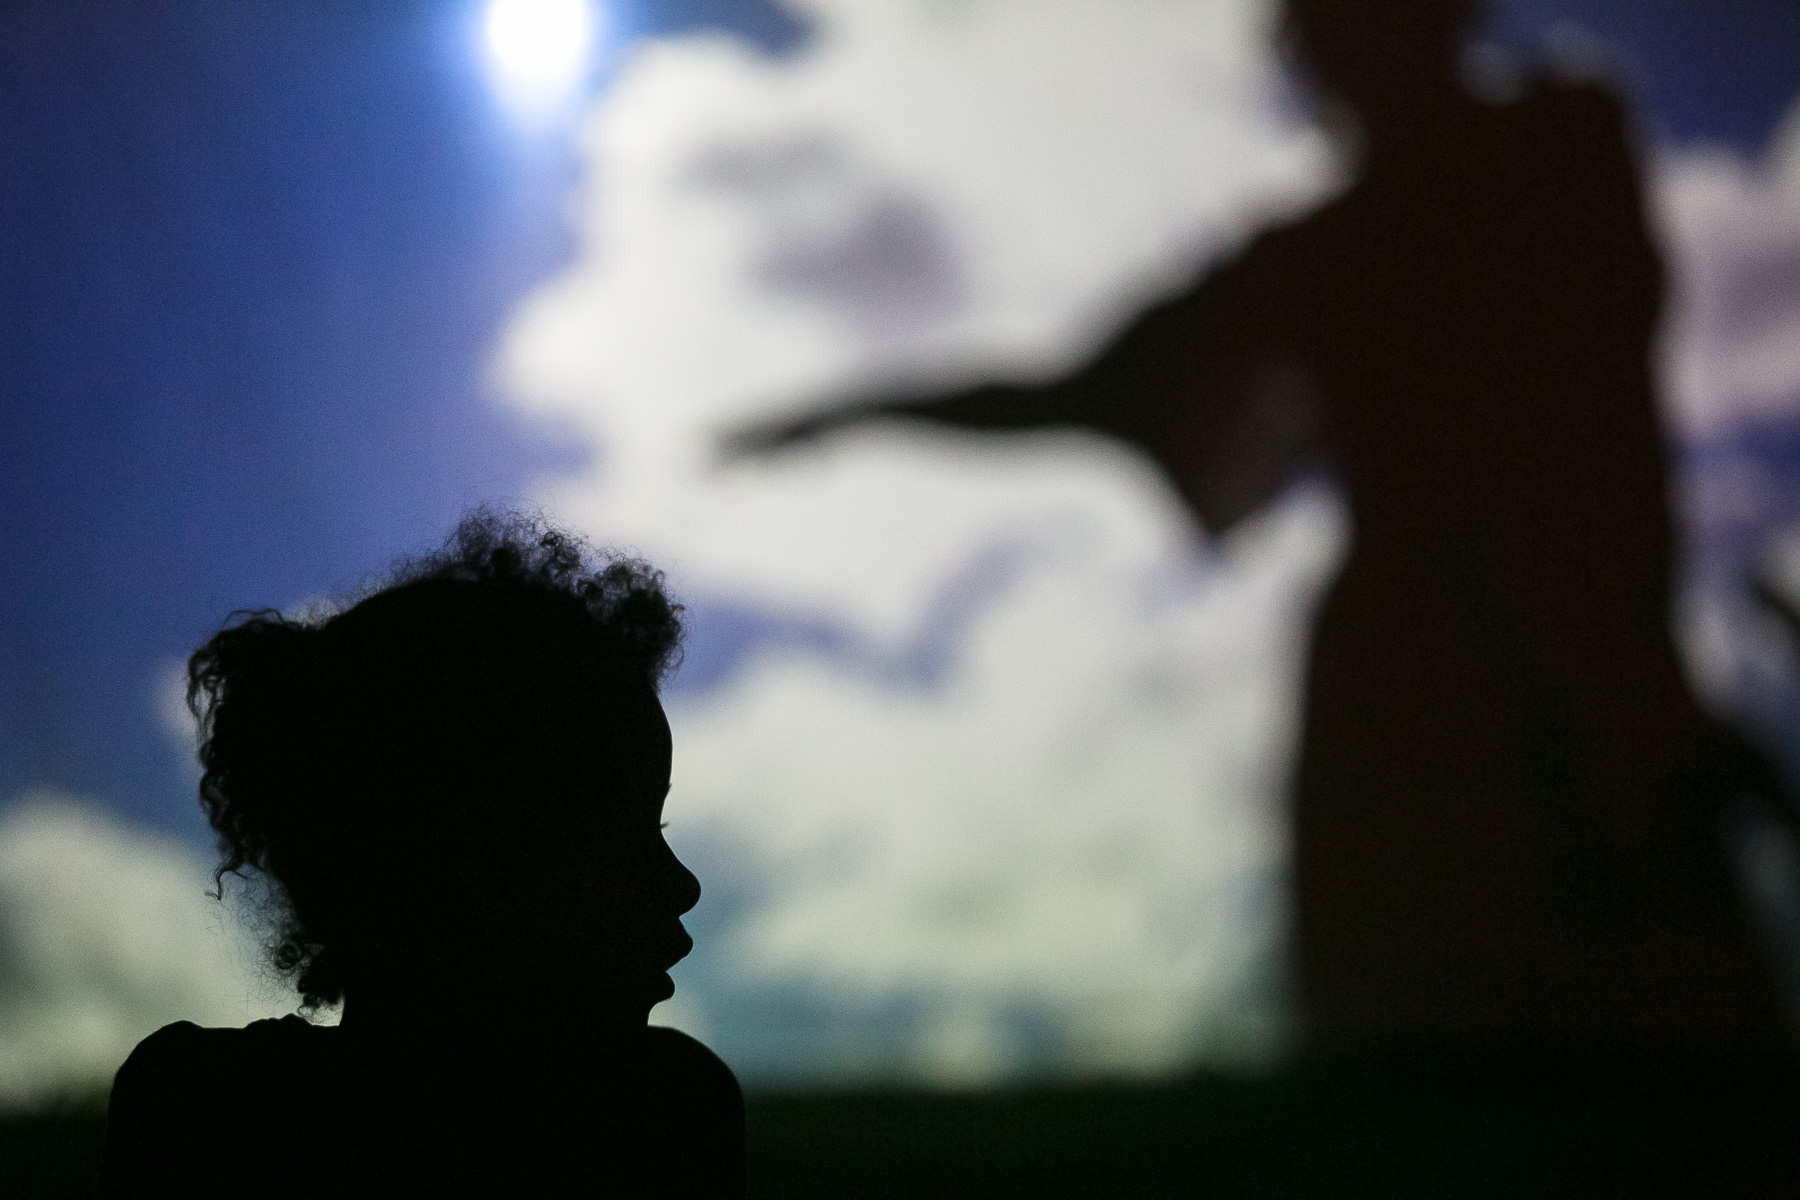 A girl watches a shadow performance by Dolina odmeva (SLO) street theatre group during the 20th annual Ana Desetnica International Street Theatre Festival in Ljubljana, Slovenia, July 6, 2017.